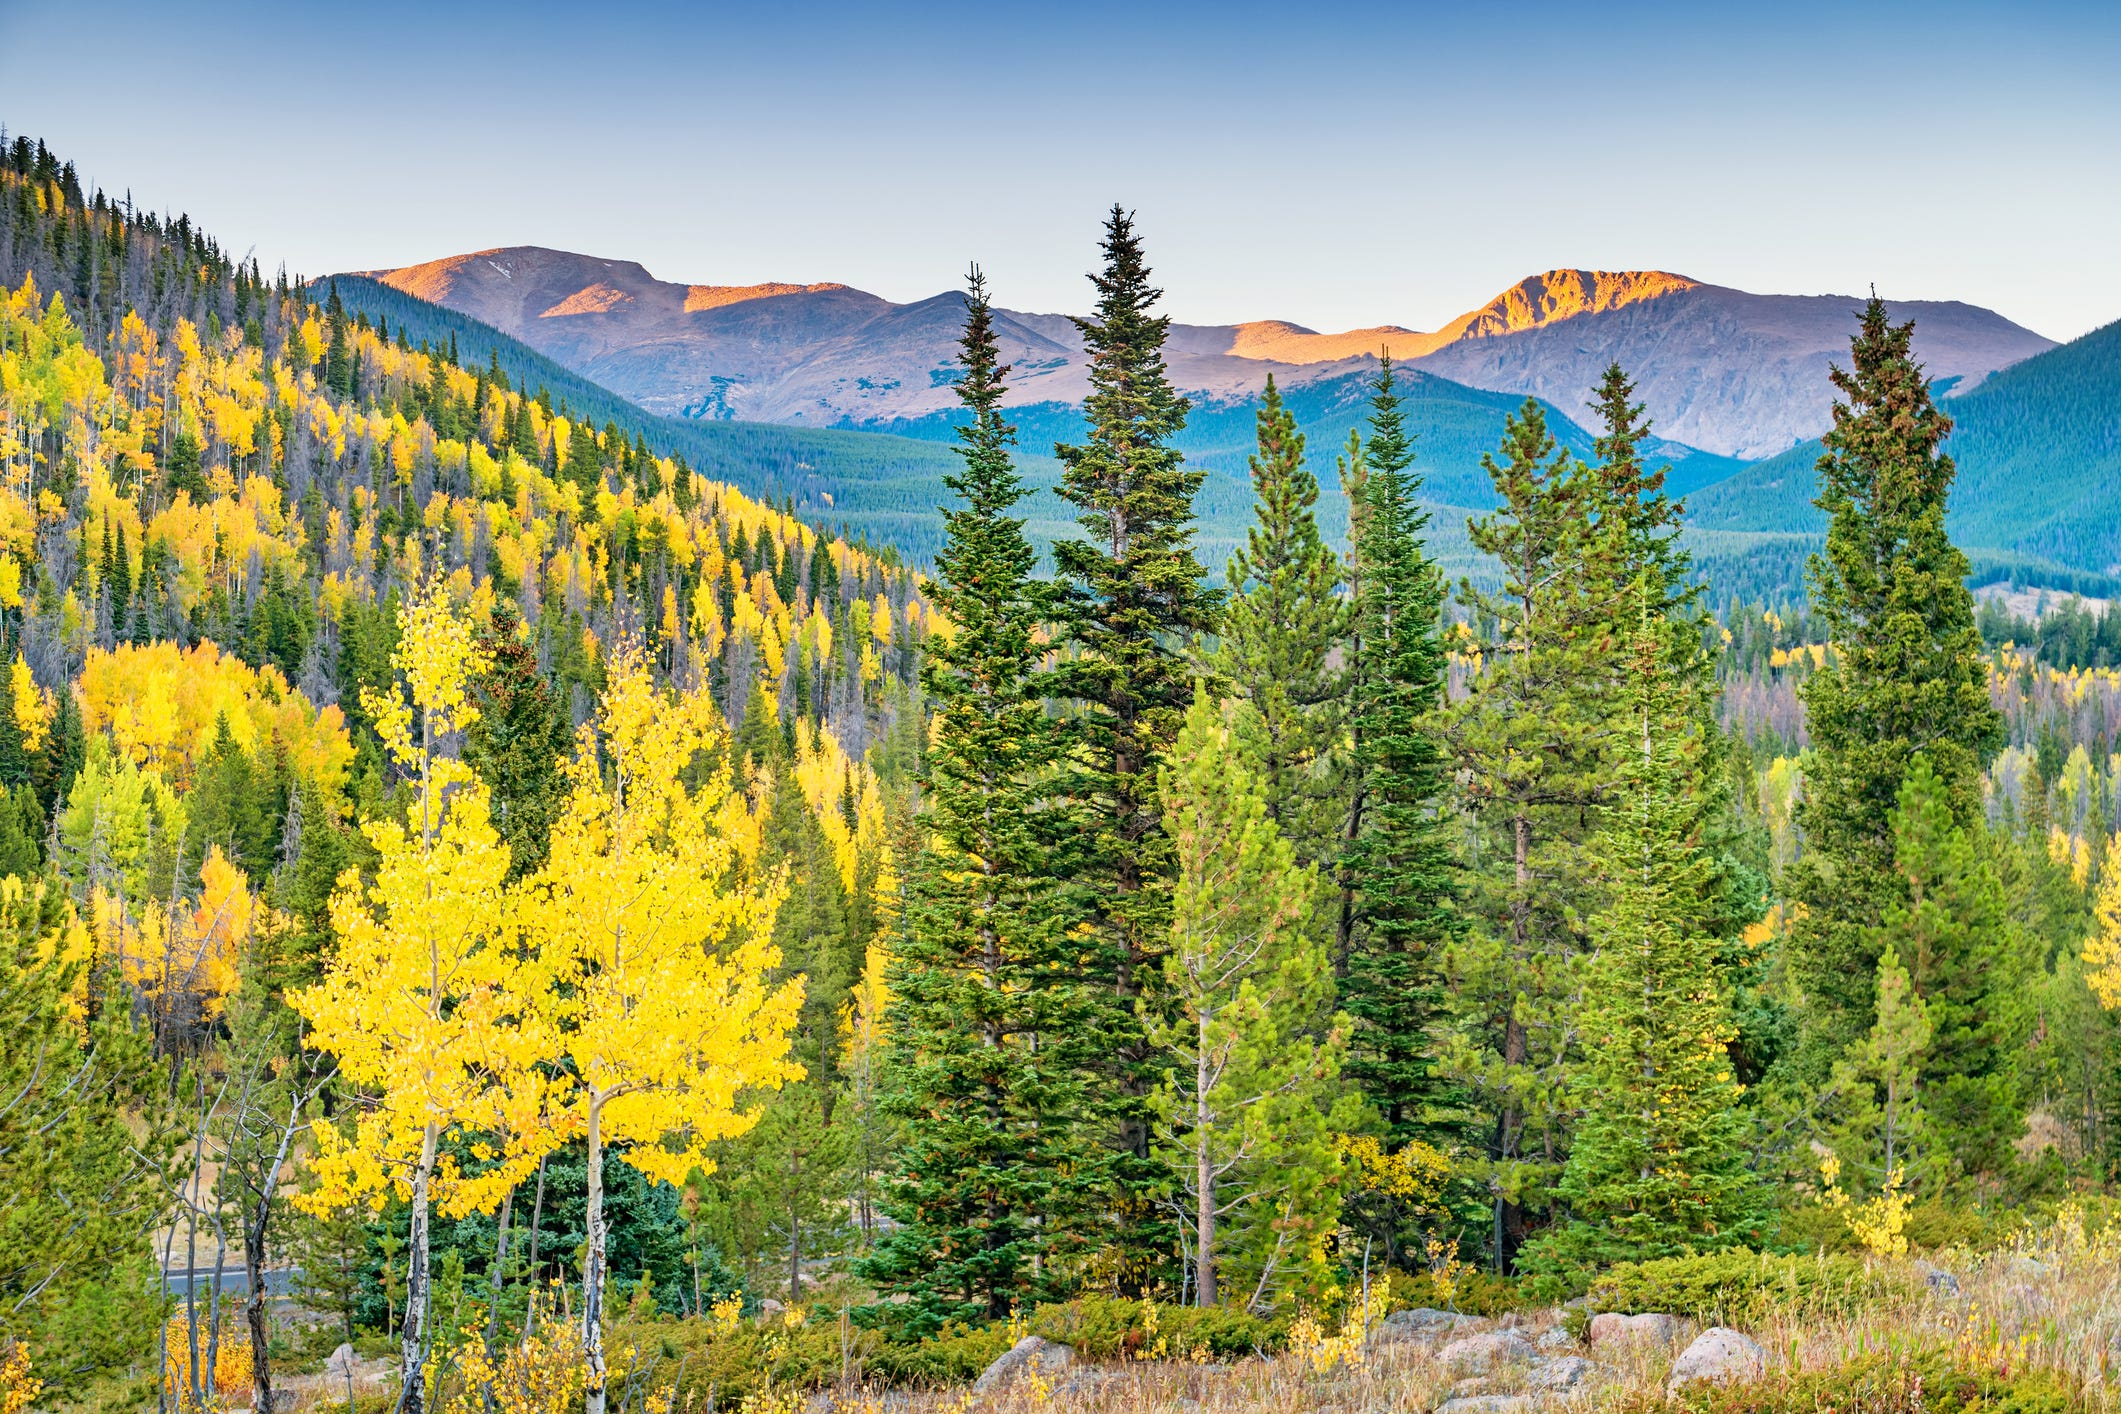 Slide 11 of 11: Rocky Mountain National Park, Colorado (Denver International Airport) • $184 round trip (23% off 2019 prices)